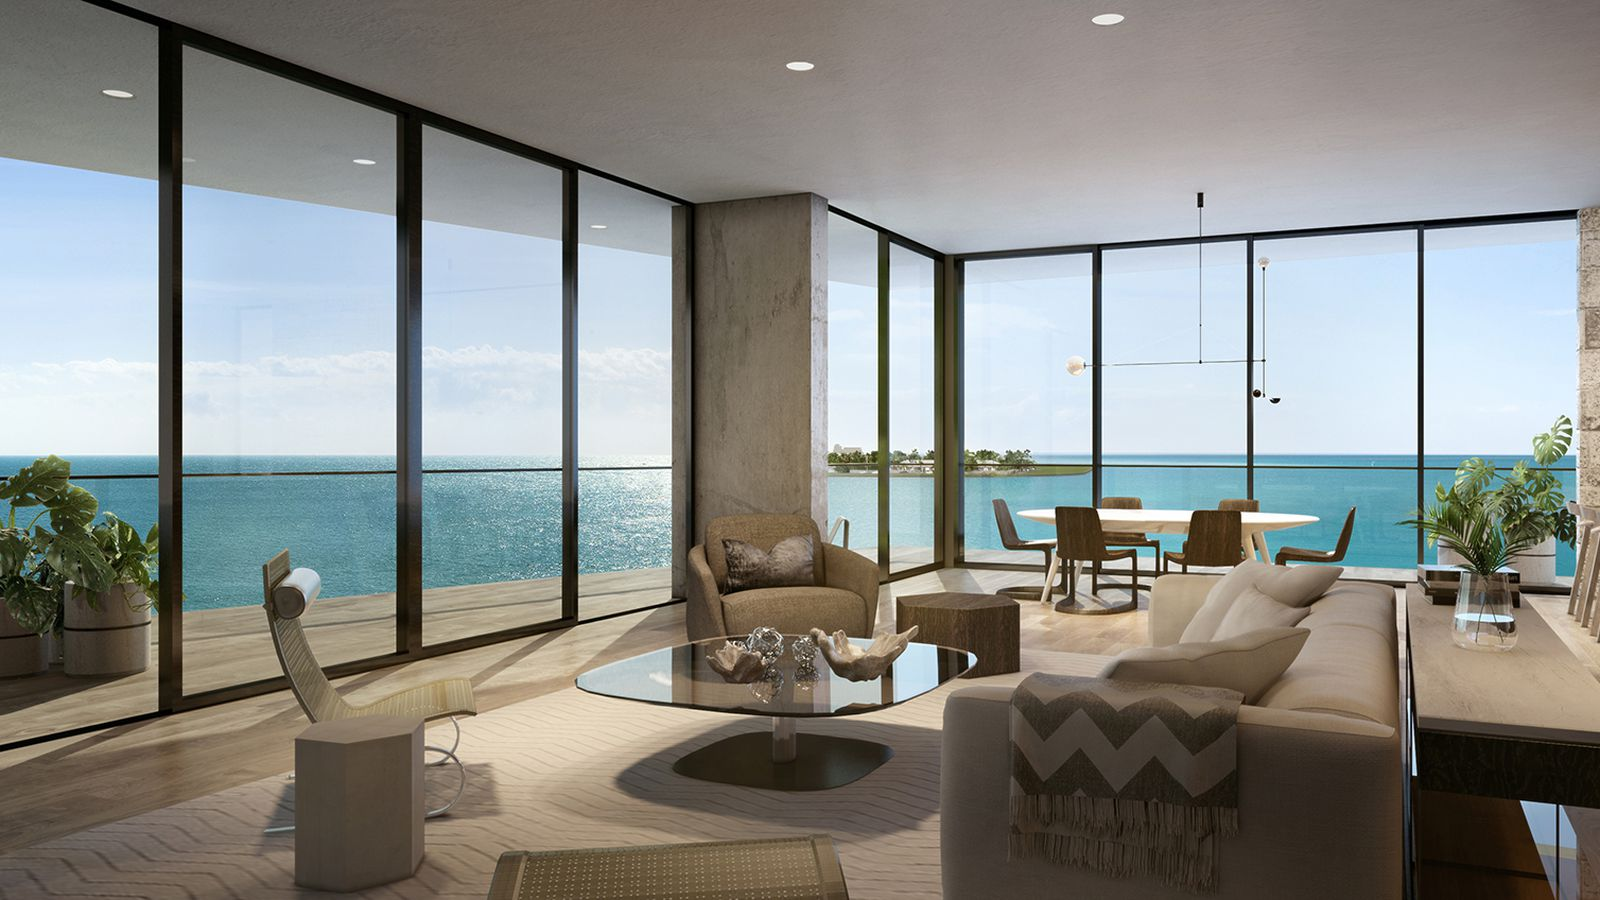 Fairchild coconut grove sells two penthouses for 8 5m for Penthouses for sale los angeles